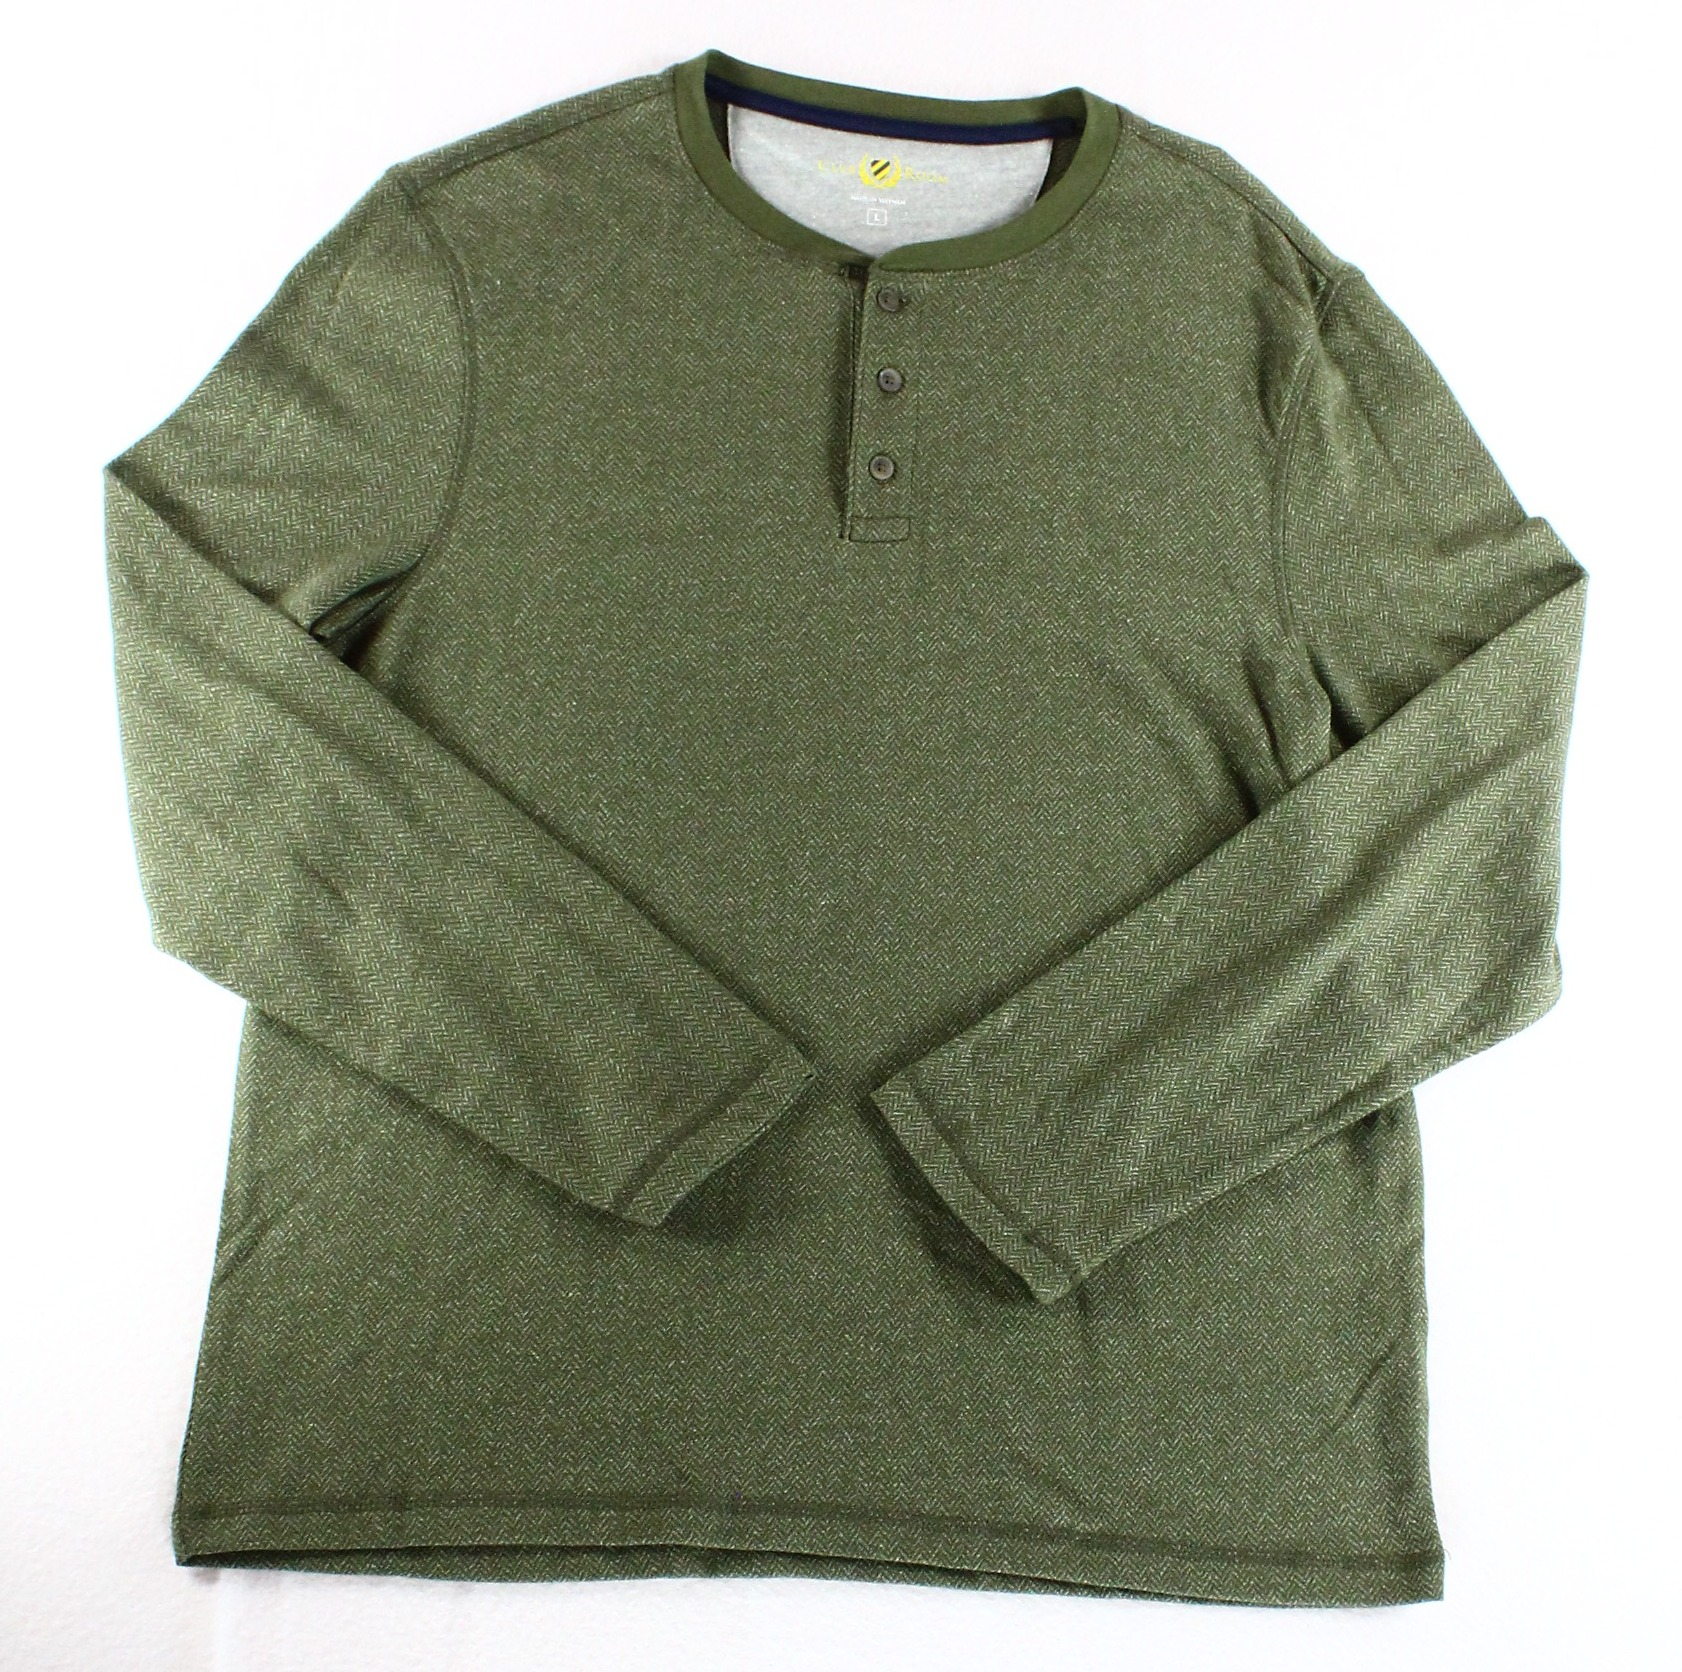 Club Room NEW Green Olive Mist Mens Size 2XL Henley Long-Sleeve Shirt $39